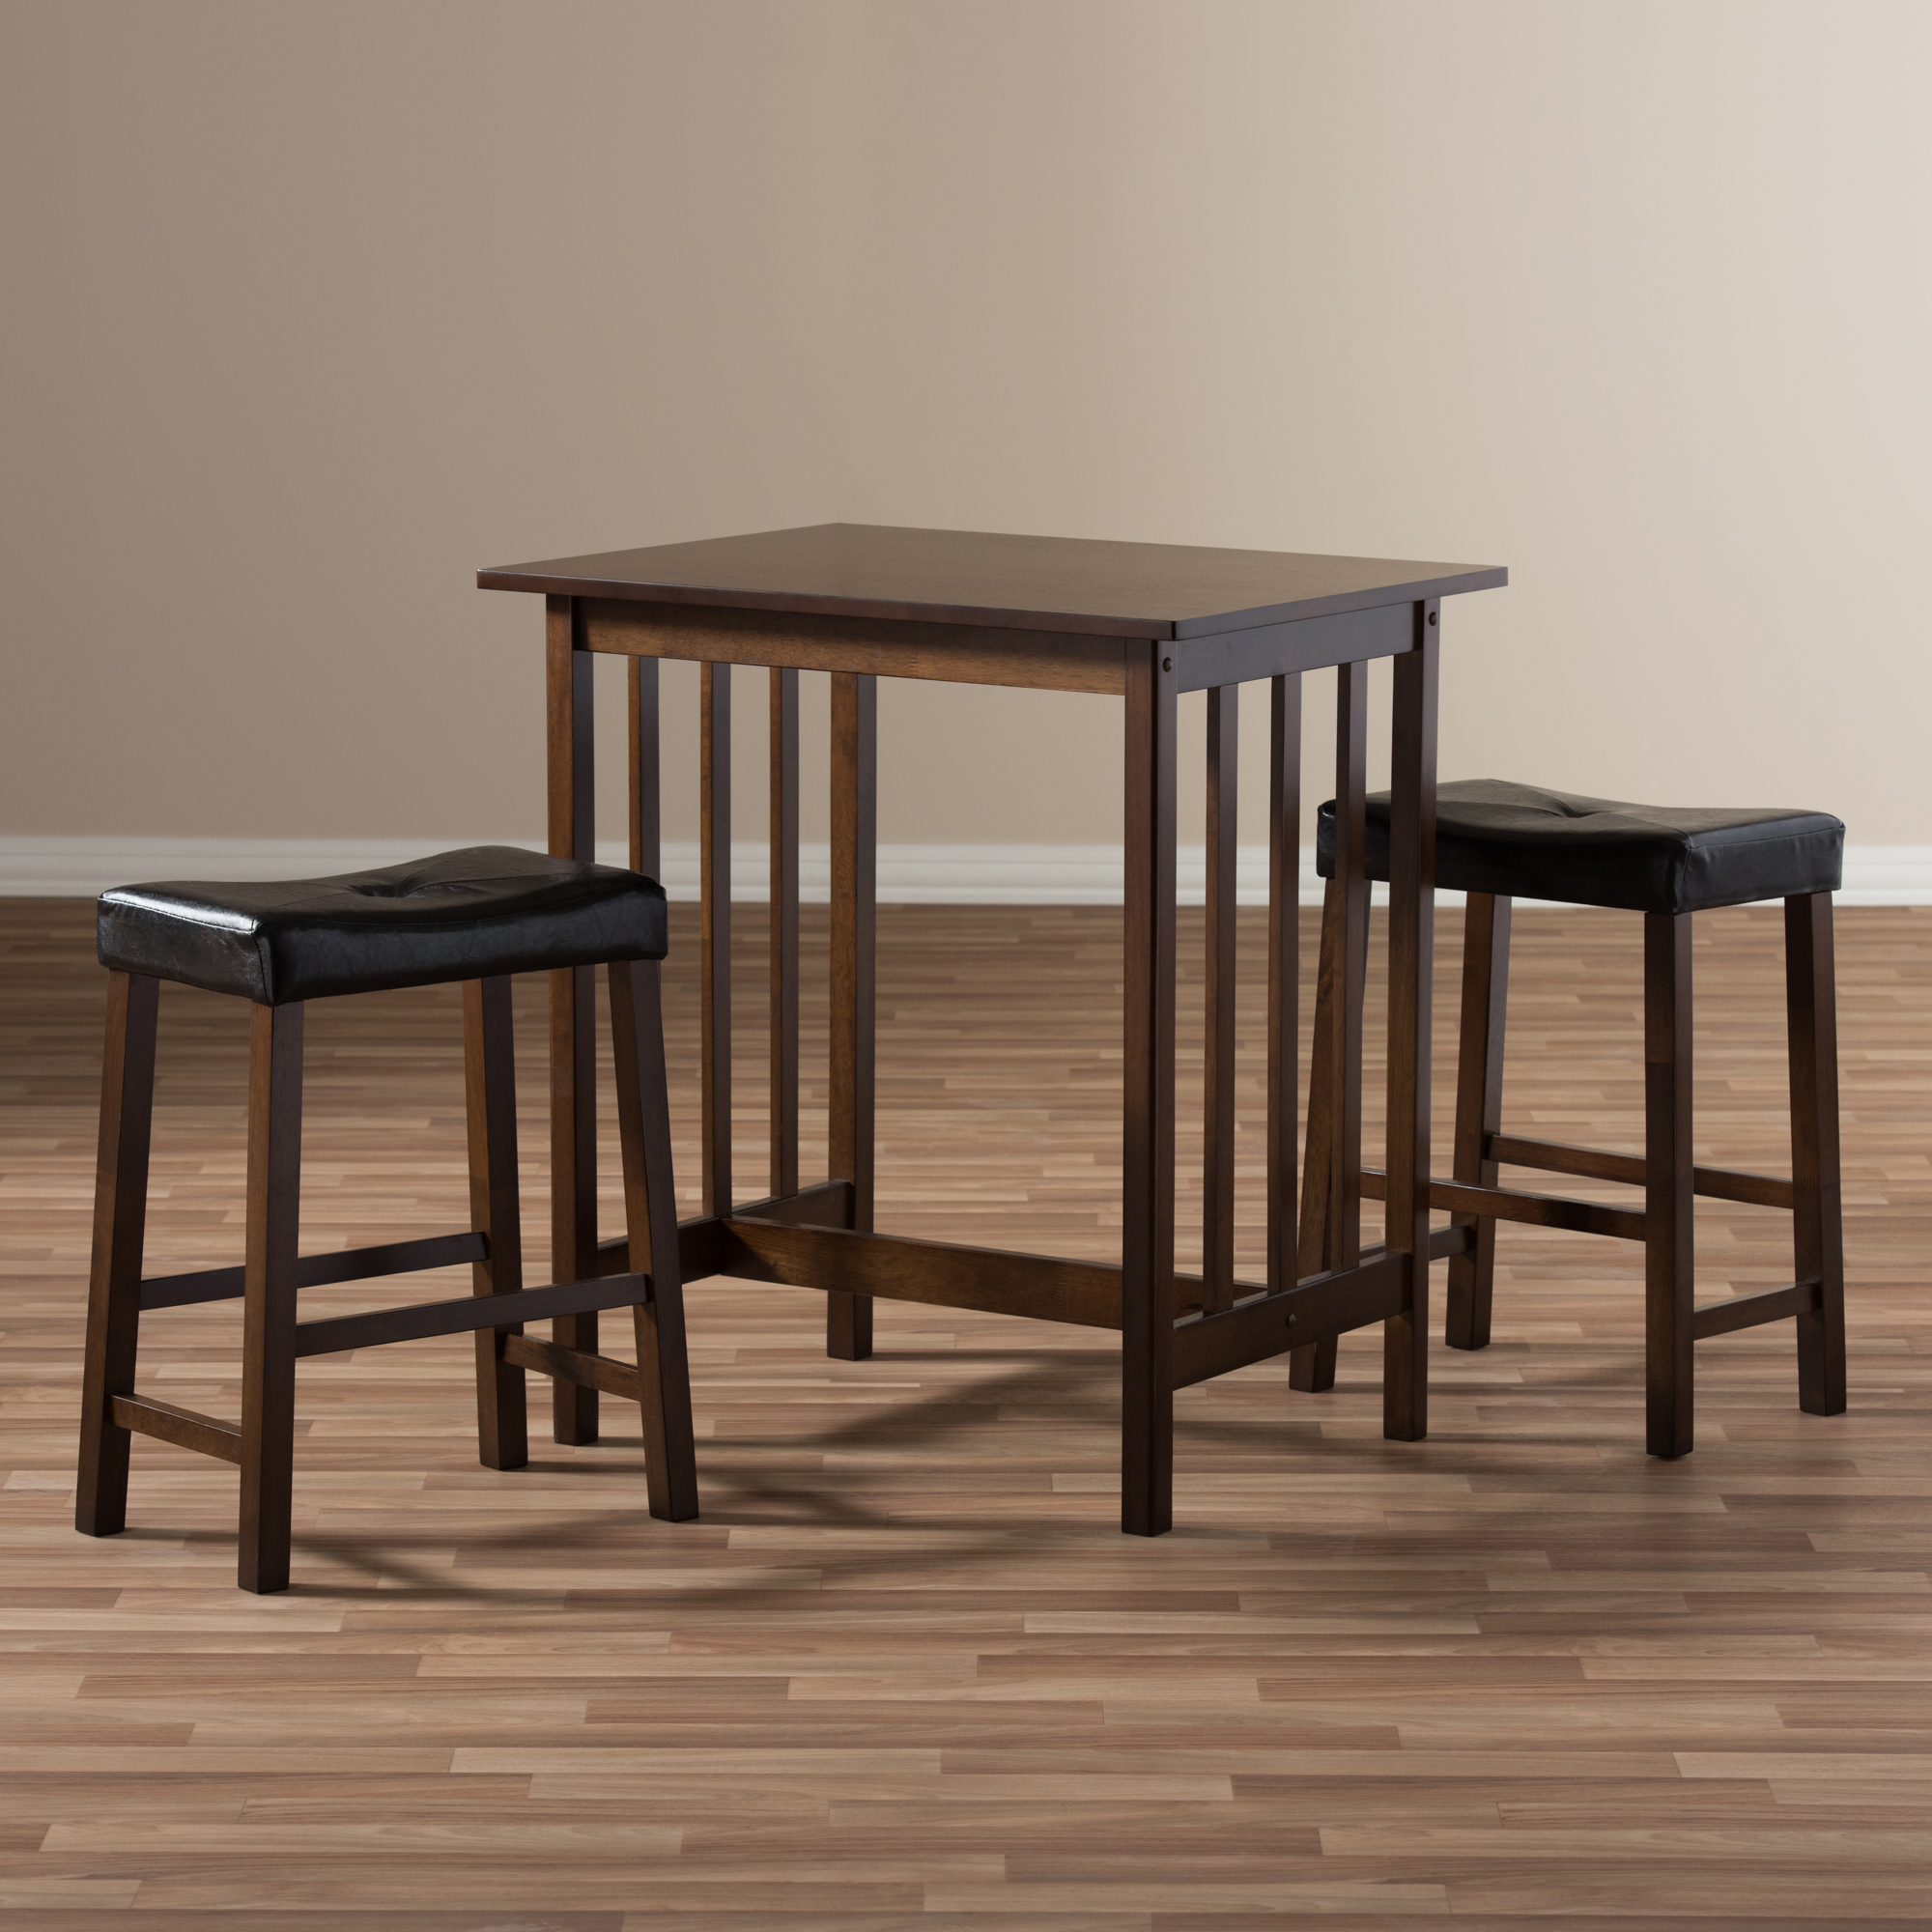 Justine Windsor 3 Piece Table And Chair Set By Delta Reviews.100 ...